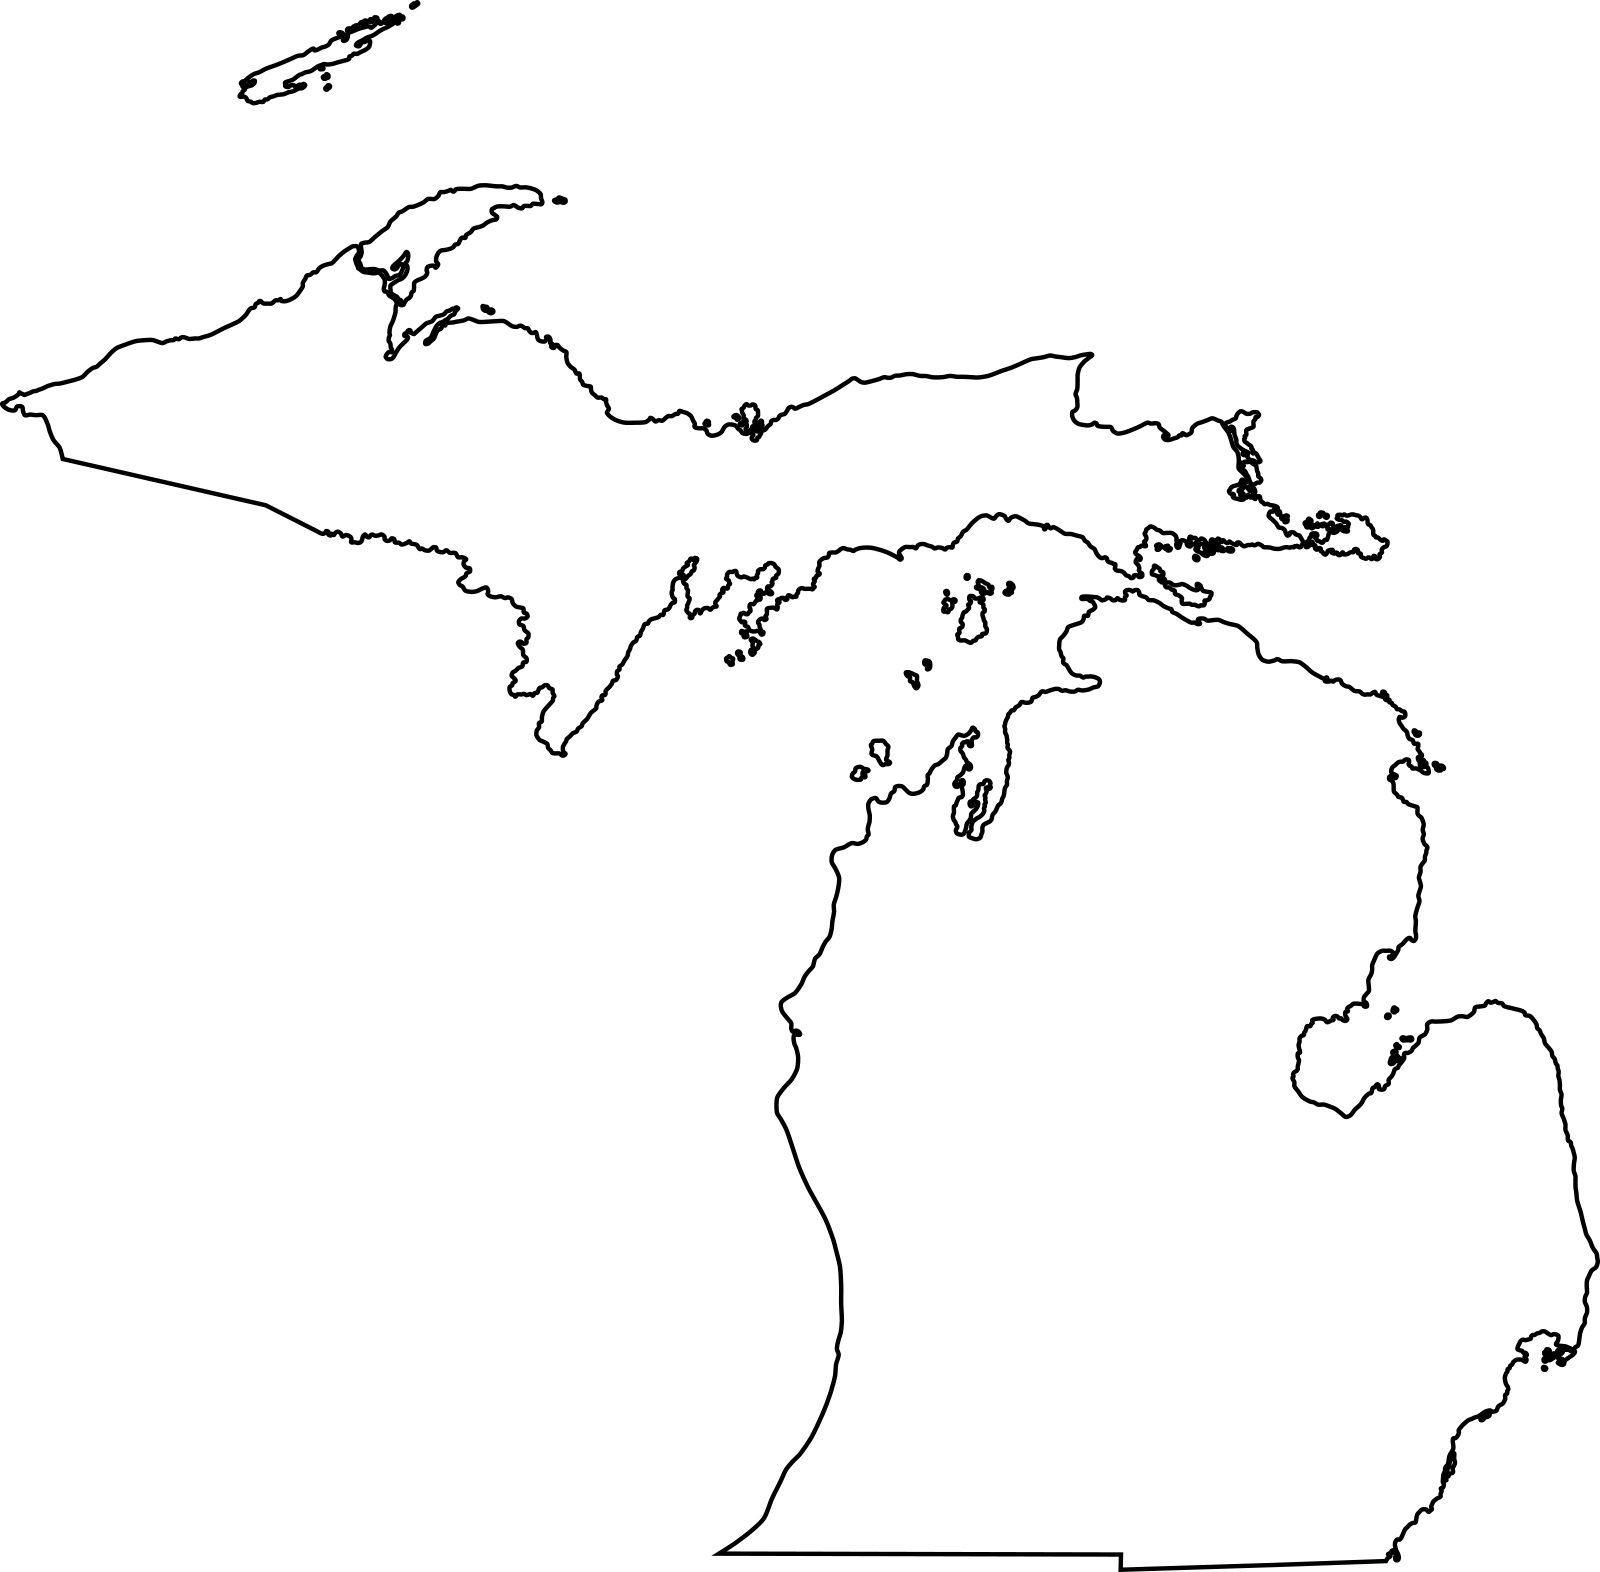 Michigan blank outline Map | Large Printable High Resolution and Standard Map